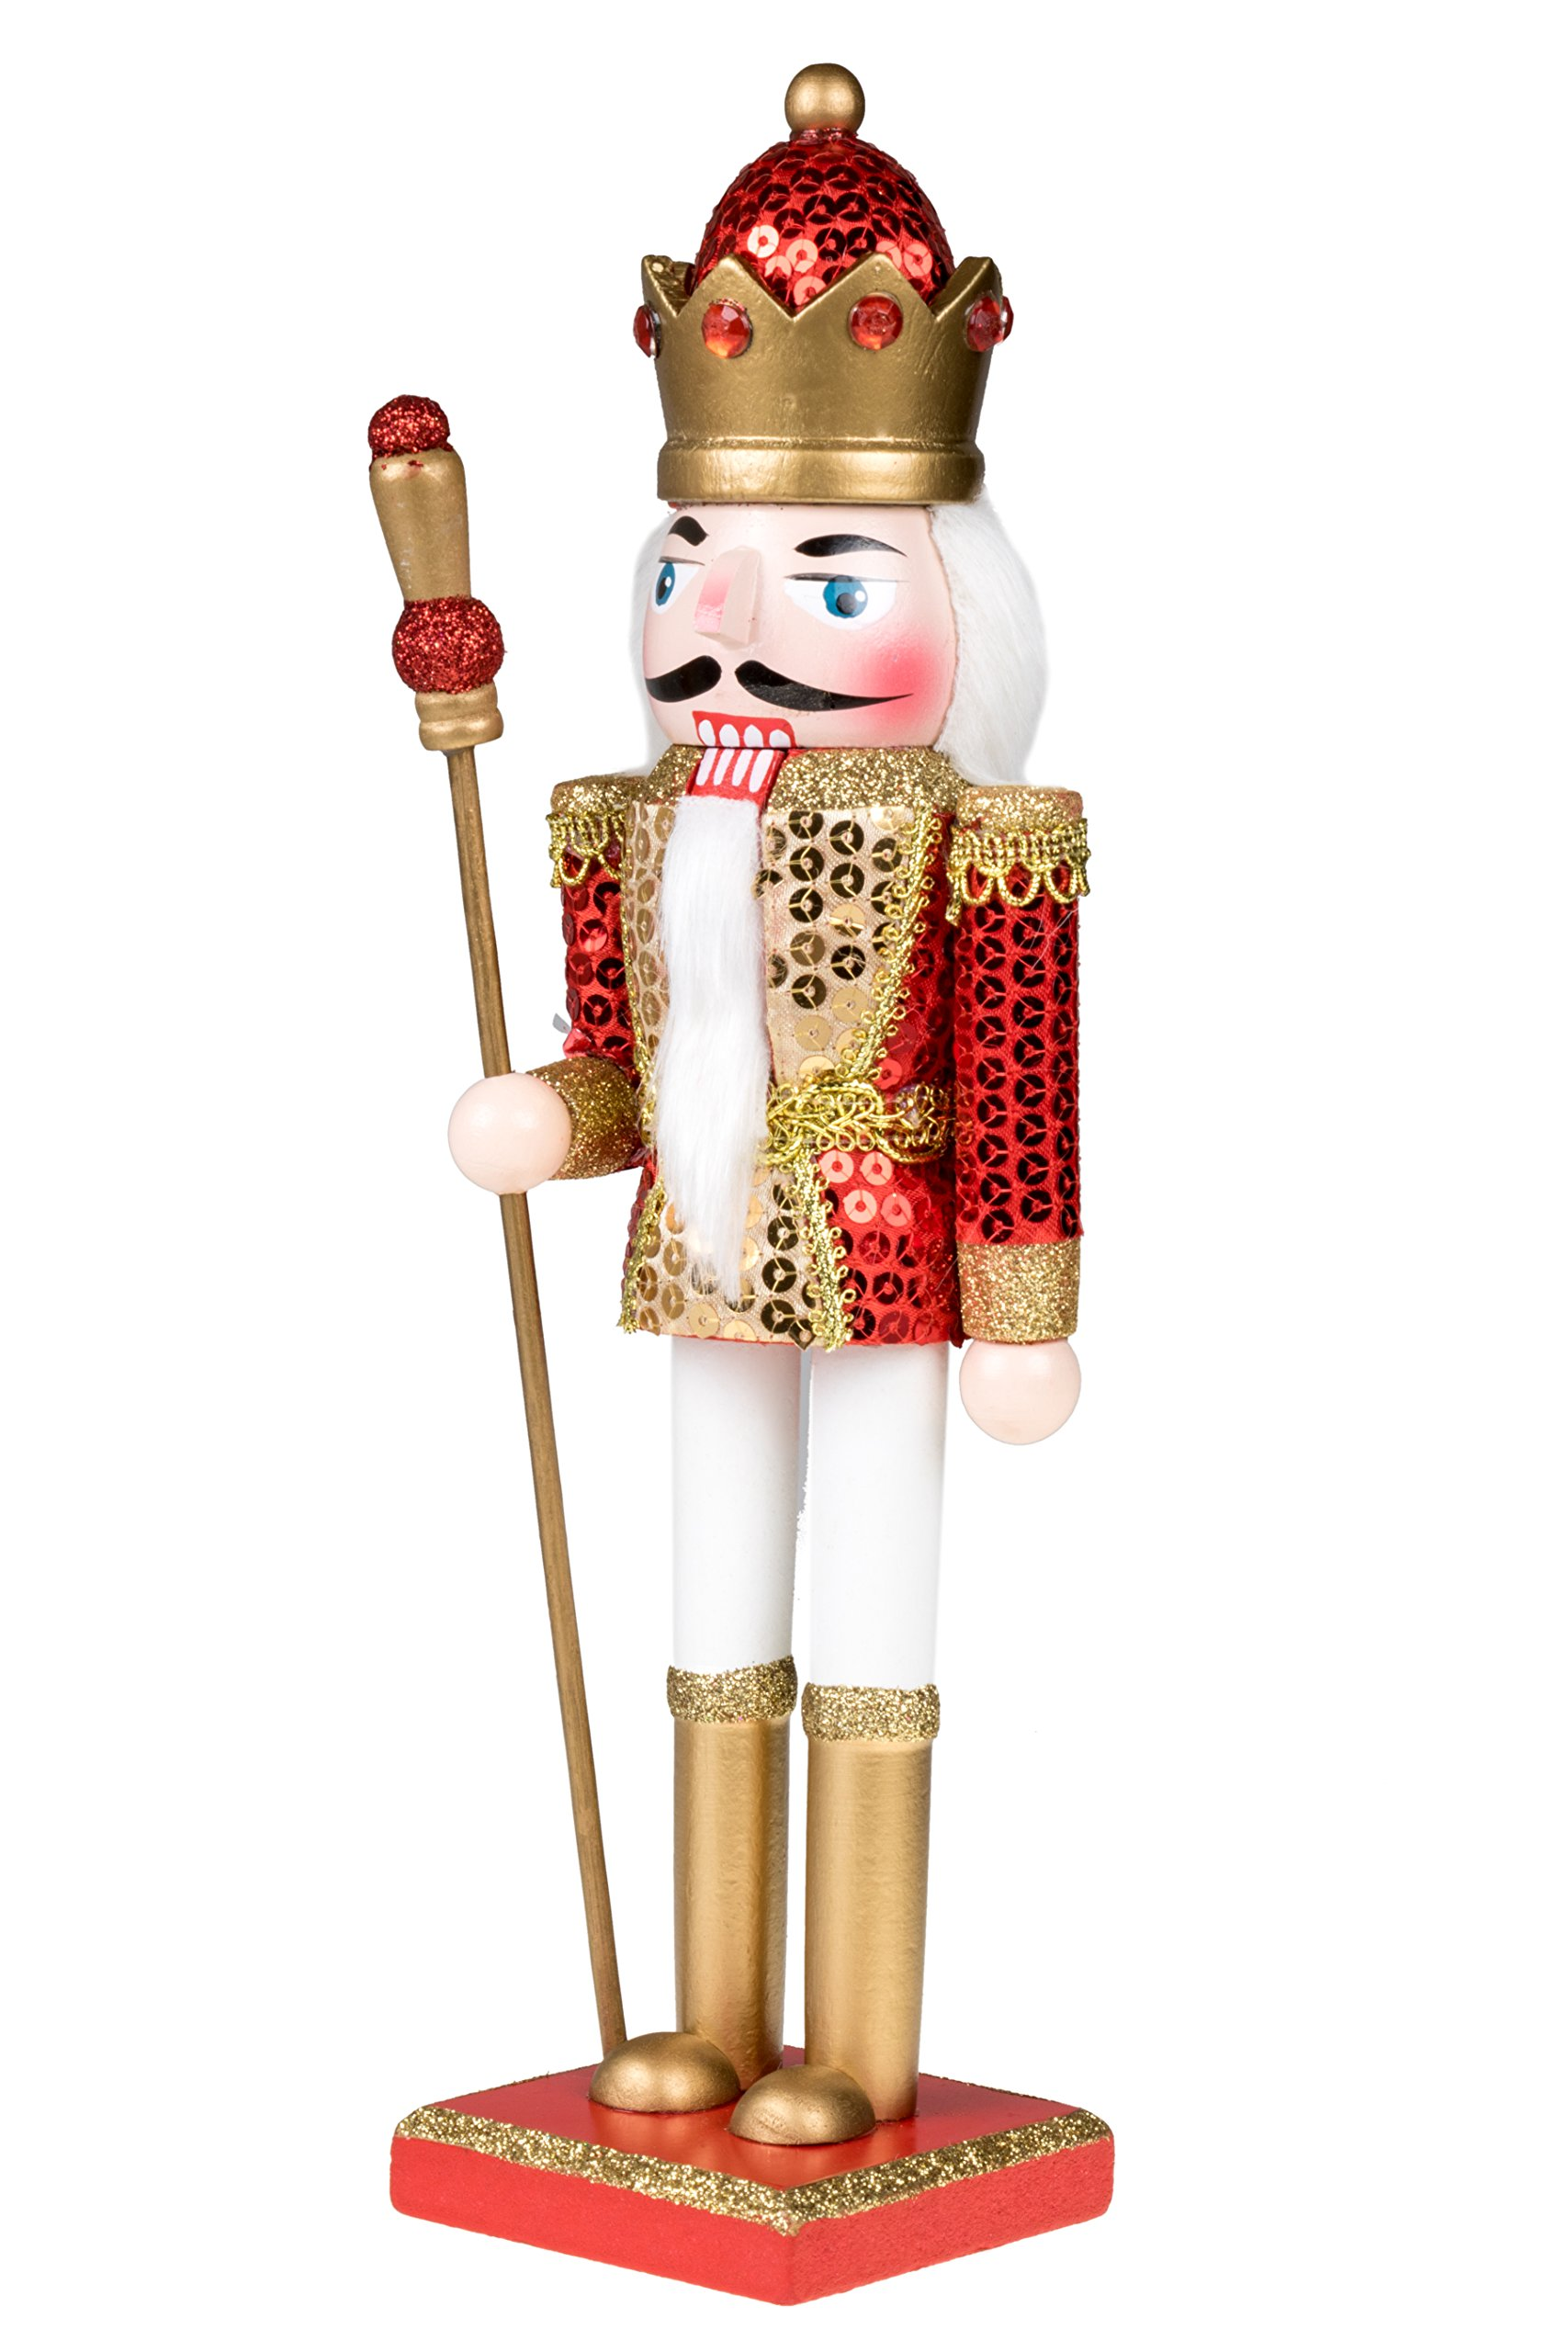 King Nutcracker | Traditional Christmas Decor | With King's Royal Scepter | Wearing Red and Gold Sequin Shirt | Perfect for Any Collection | Perfect for Shelves & Tables | 100% Wood | 12'' Tall by Clever Creations (Image #3)